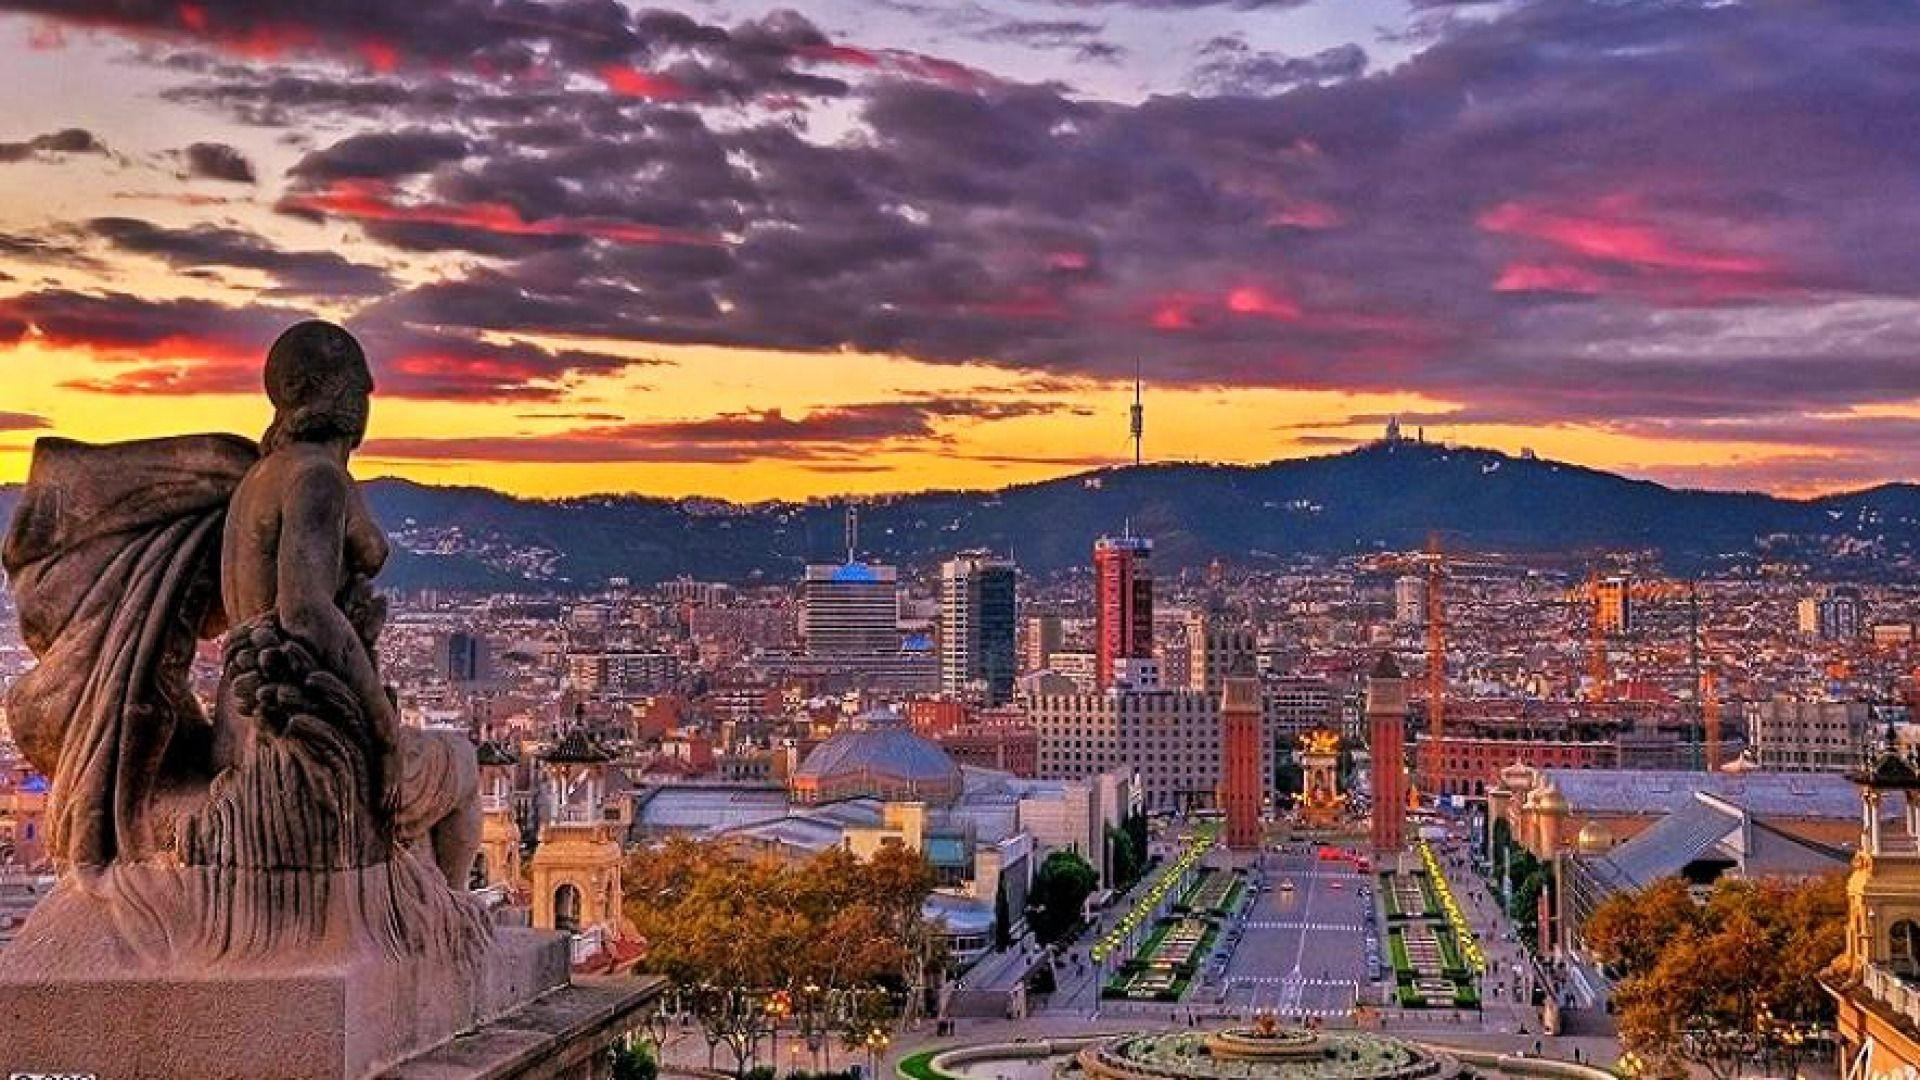 Barcelona City Wallpapers Wallpaper Cave